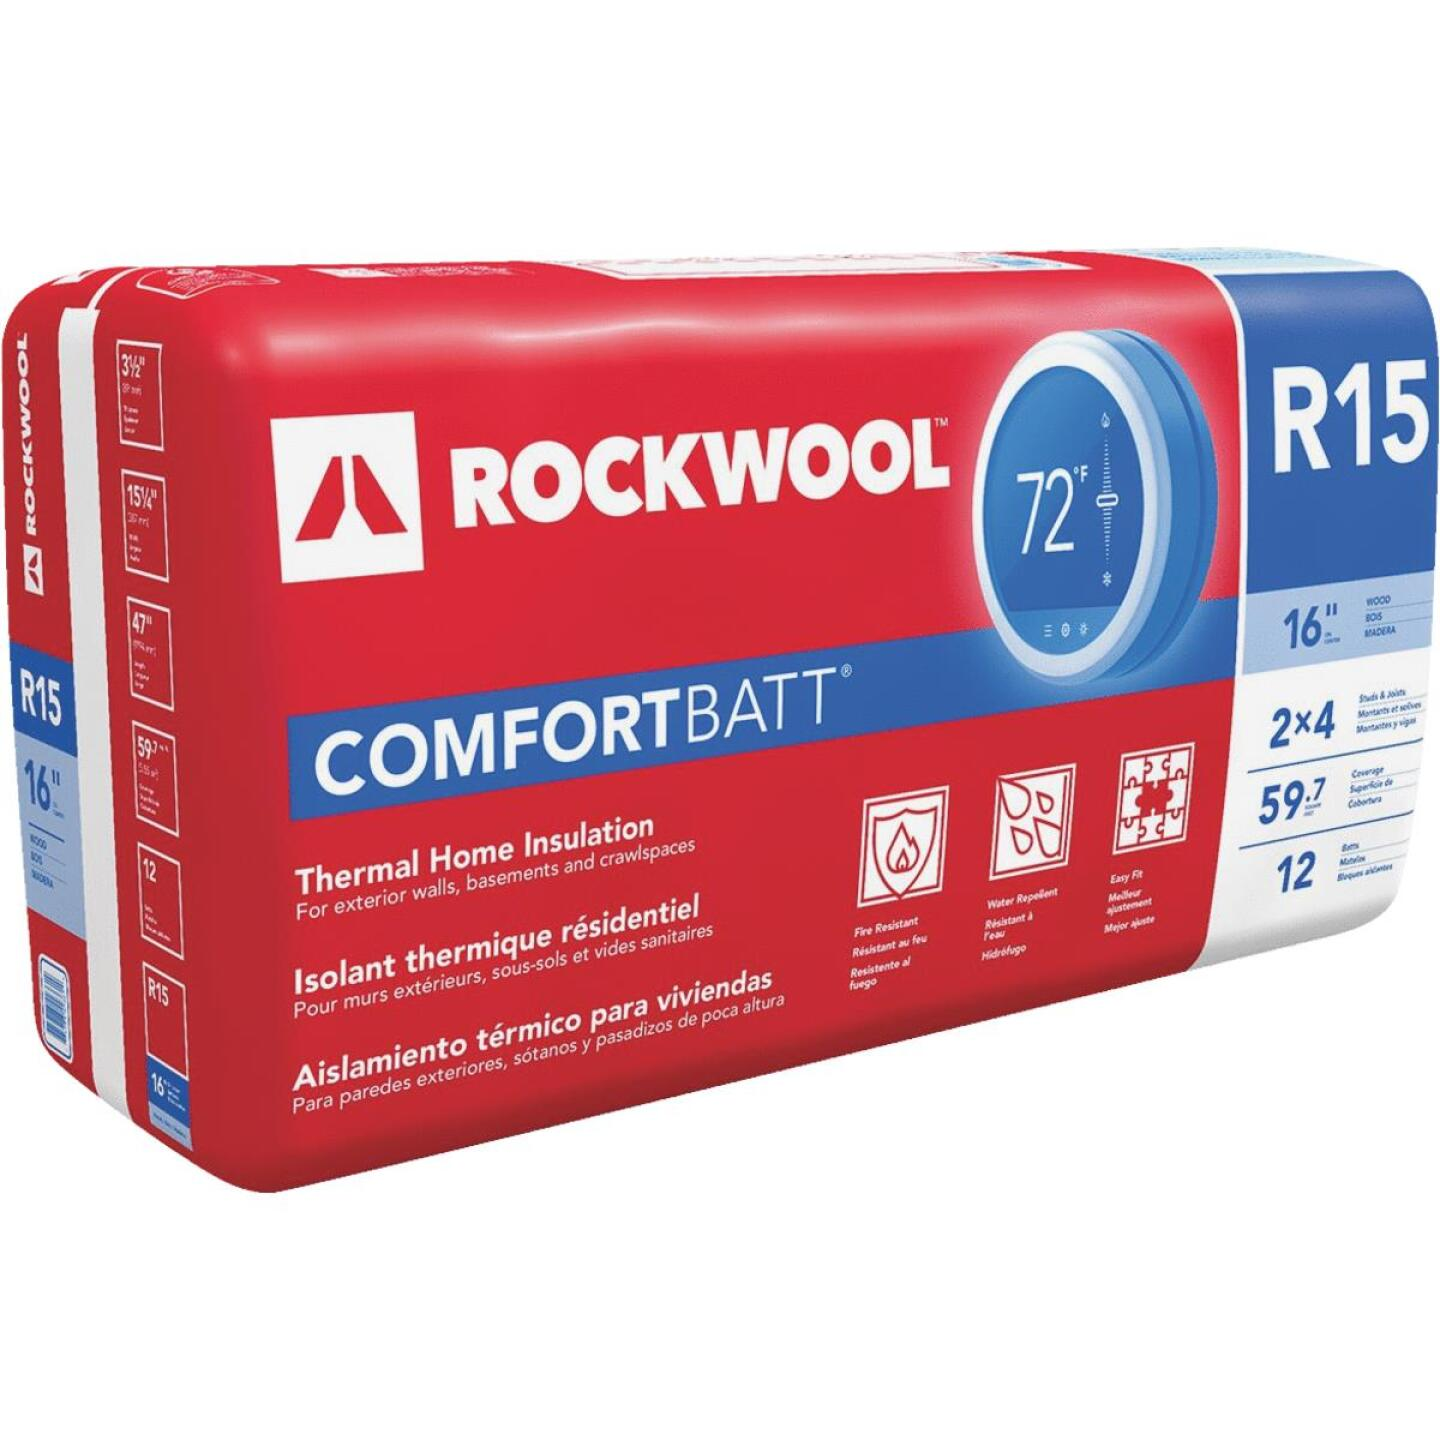 Rockwool Comfortbatt R-15 16 In. x 47 In. Stone Wool Insulation (12-Pack) Image 1